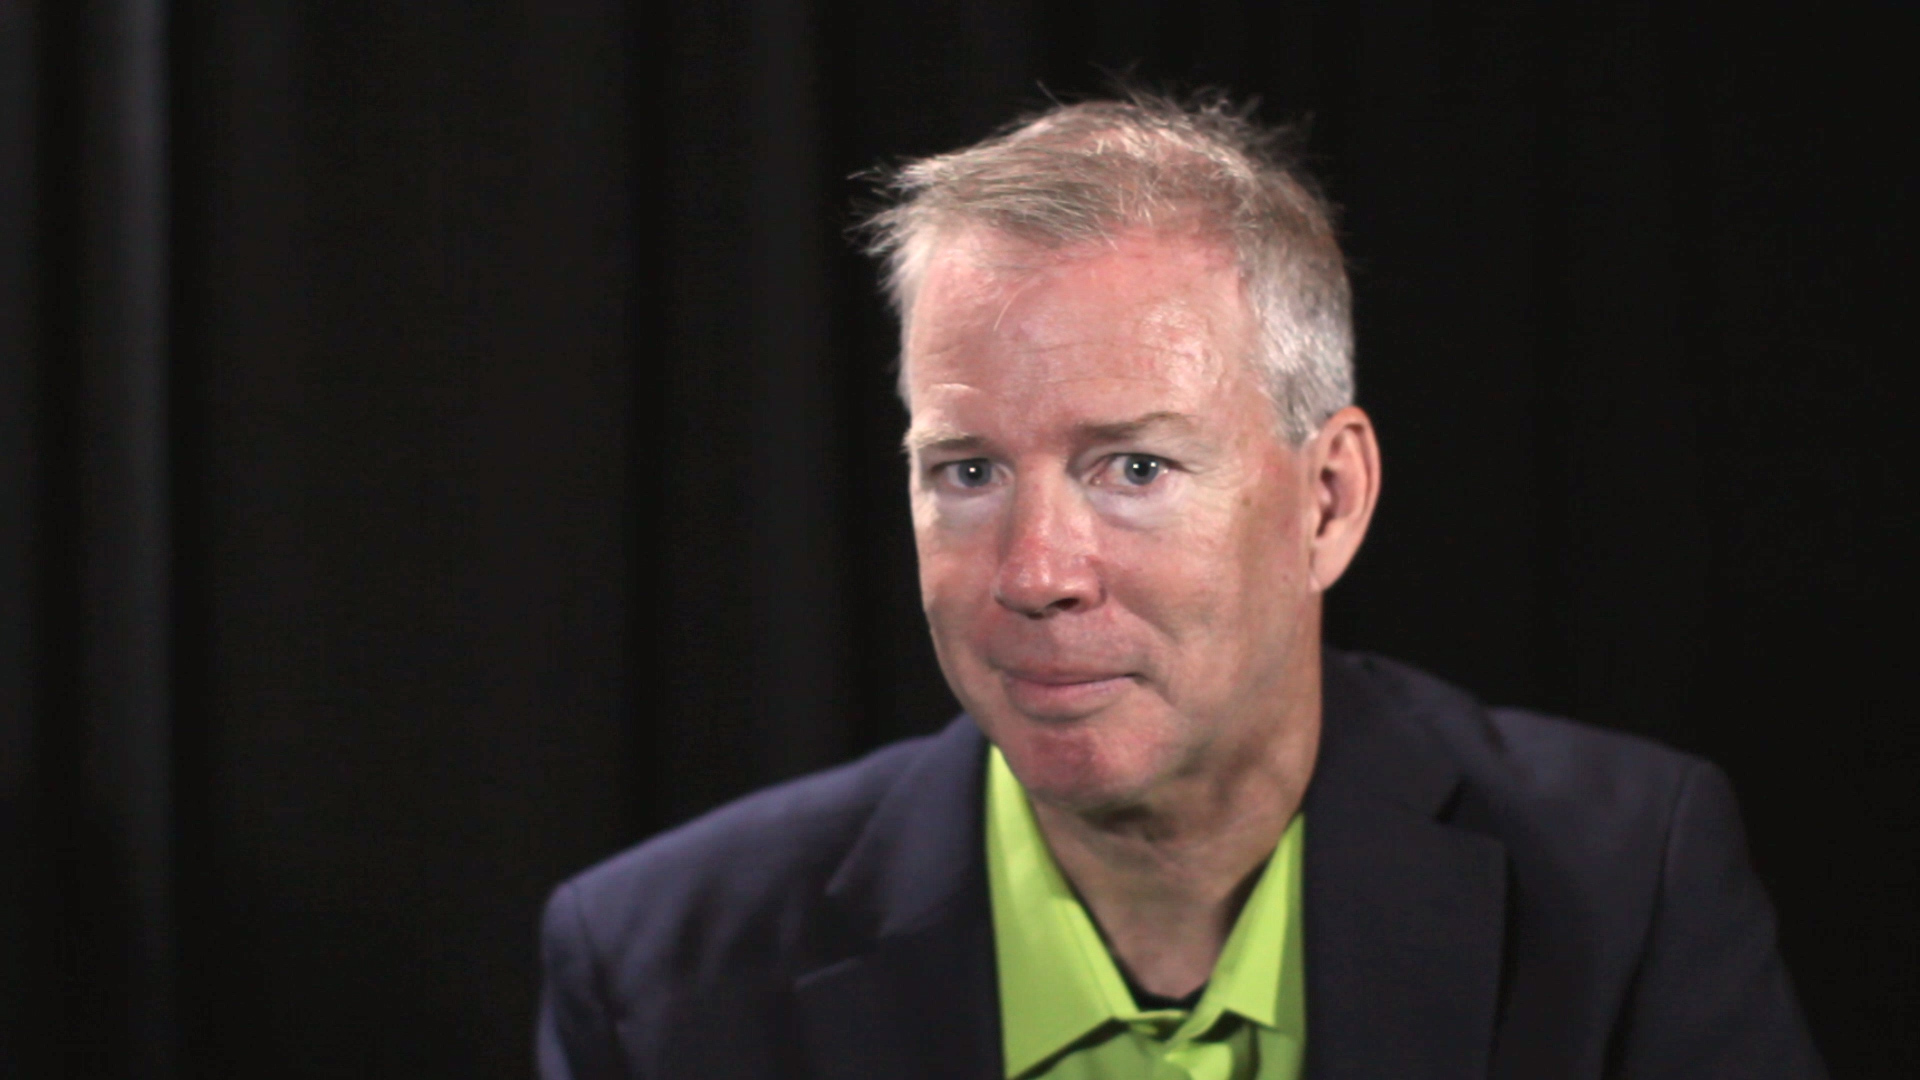 Video preview: Dave Hunter of Pilot Marketing: The Value of Closed Loop Color Management